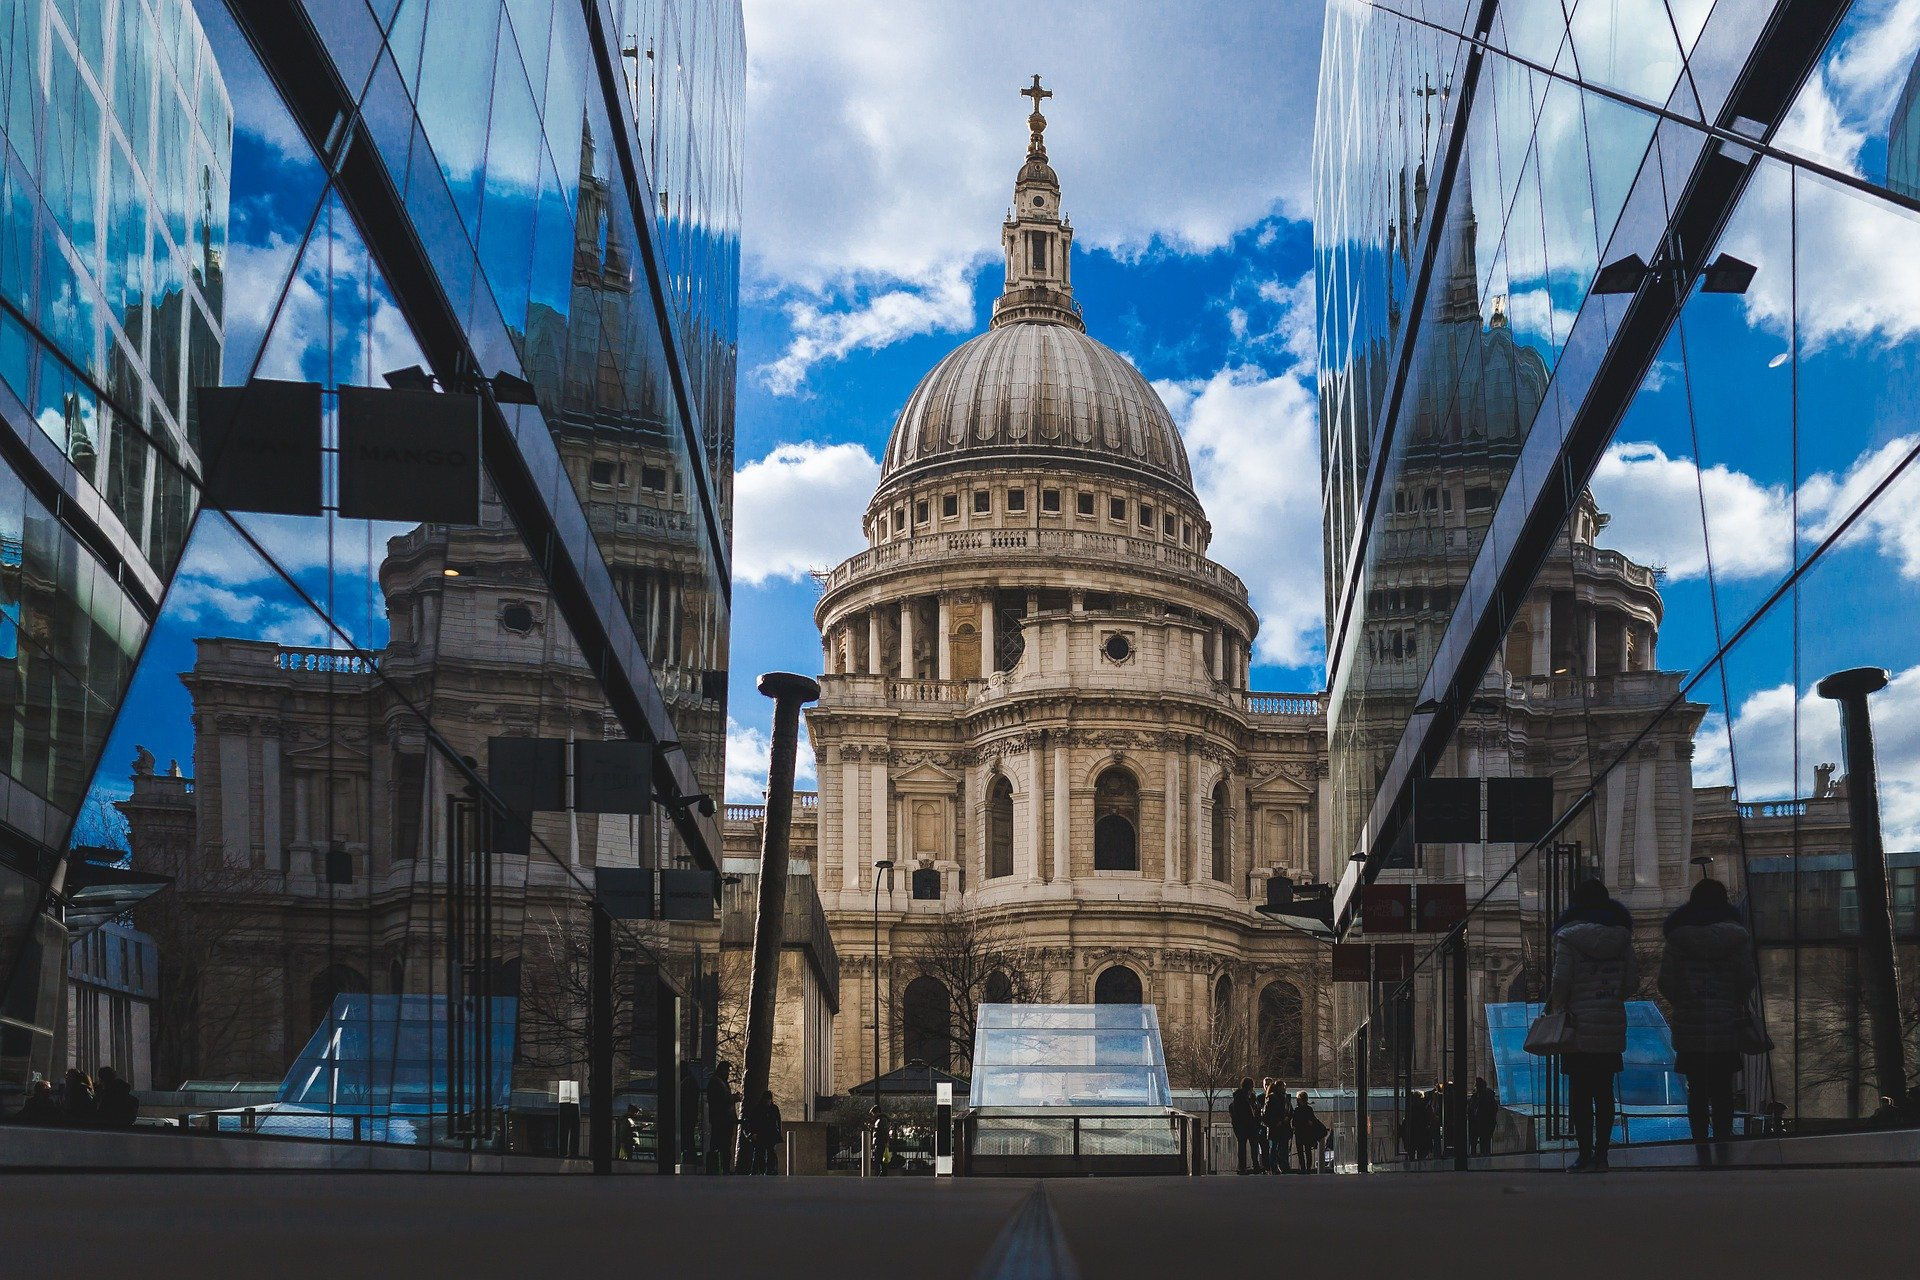 St. Paul's Cathedral London, England Architecture